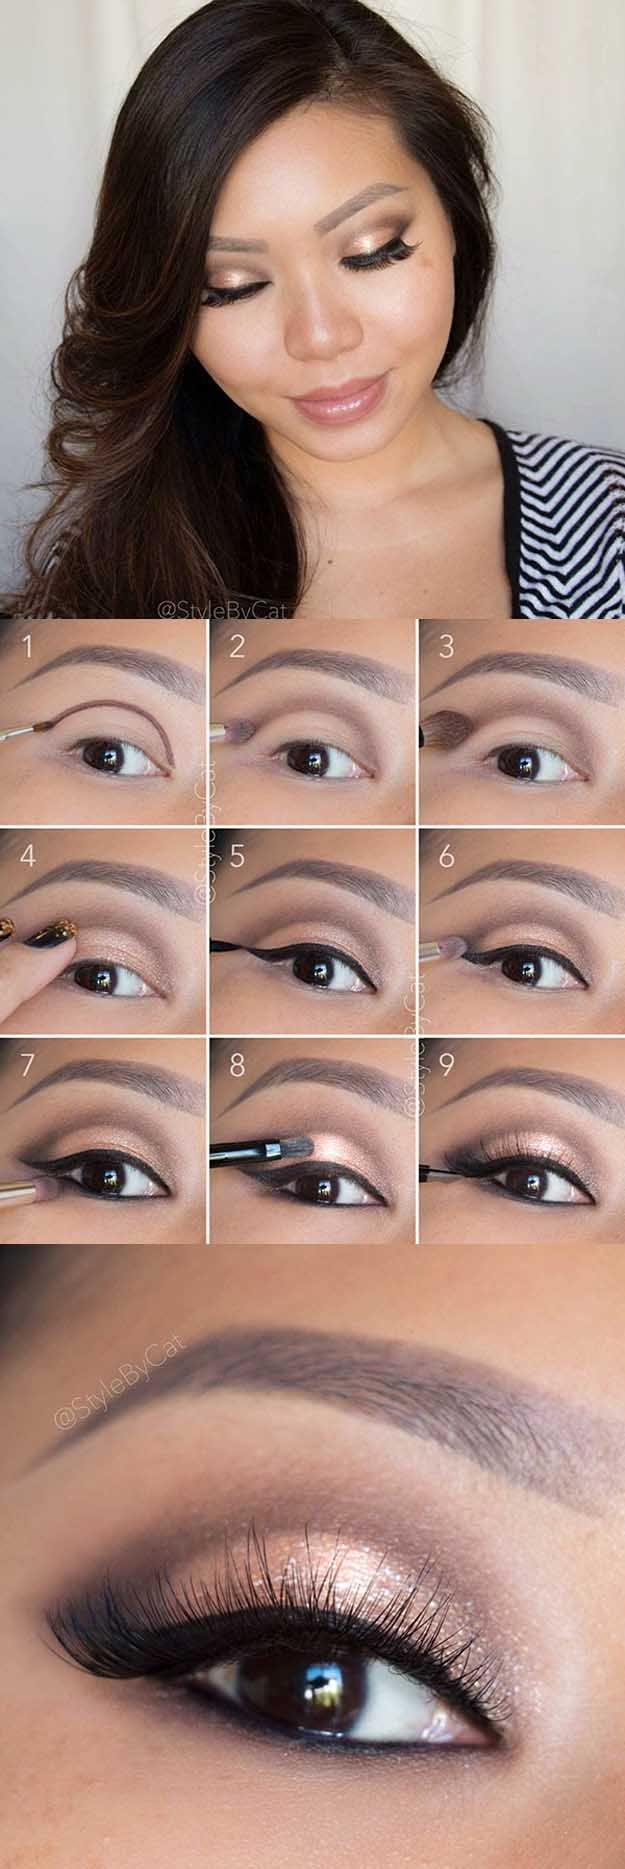 6 Eye Makeup Tips for Hooded Eyes in 2020 (With images